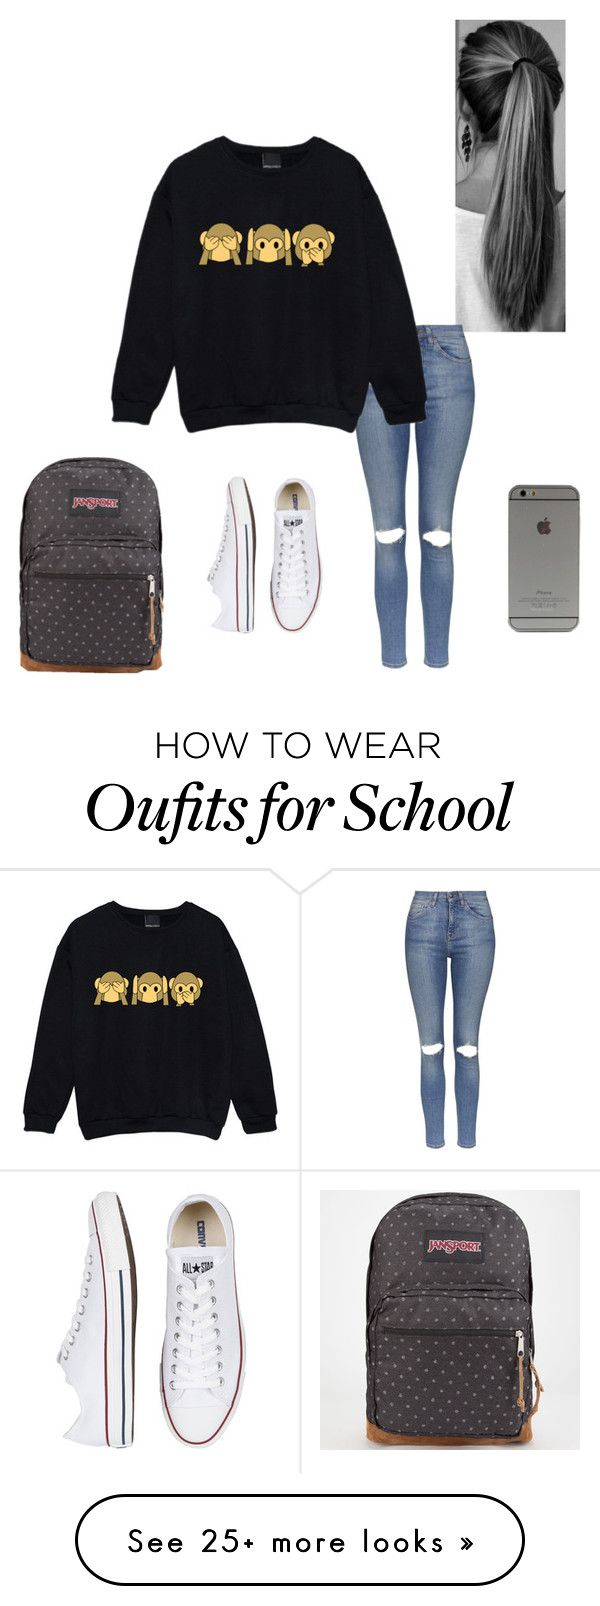 """""""School"""" by staychic-fashion on Polyvore featuring moda, Topshop, Converse e JanSport"""